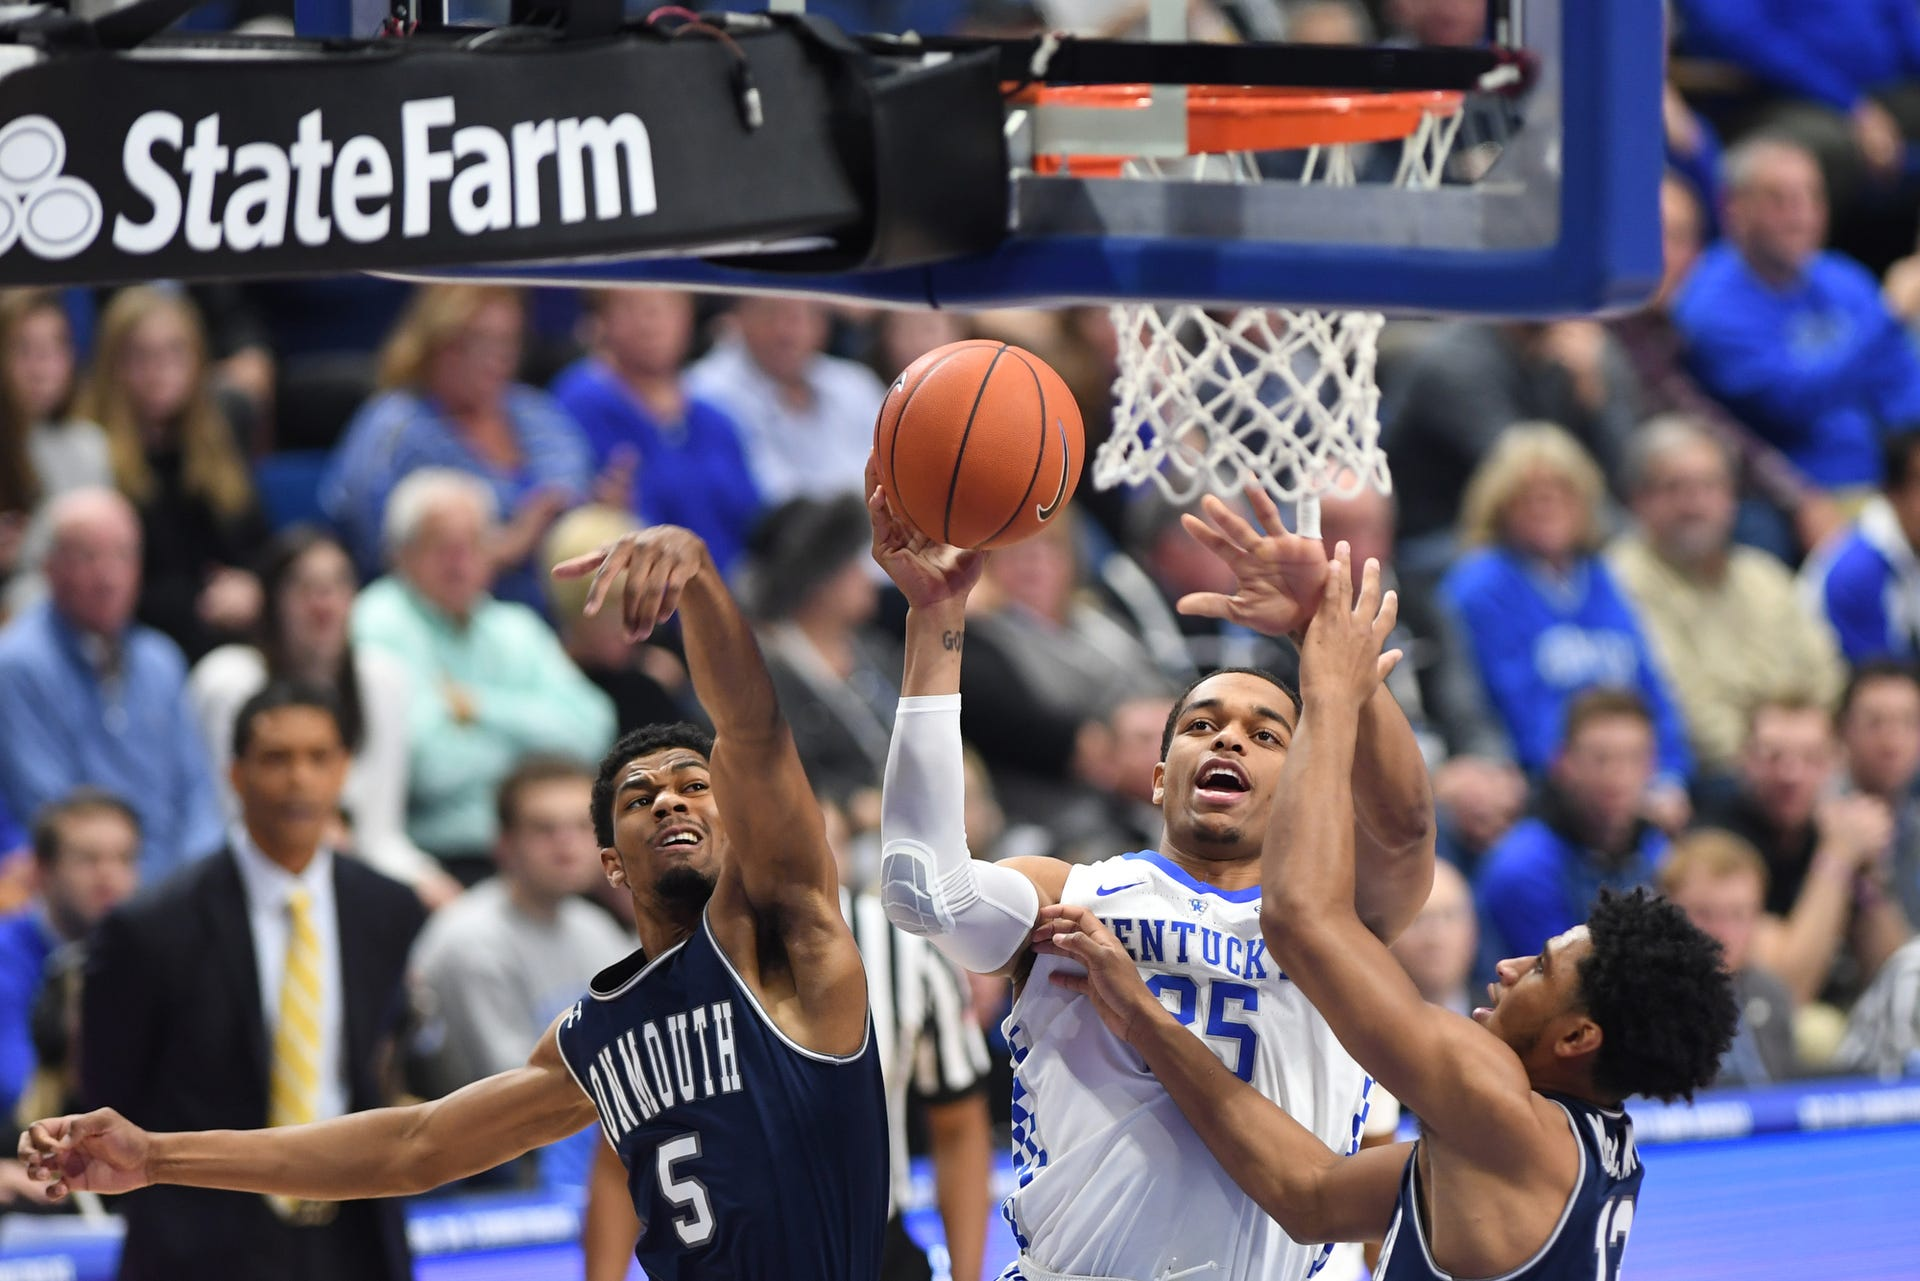 Uk Basketball: What Time Is The University Of Kentucky Basketball Game